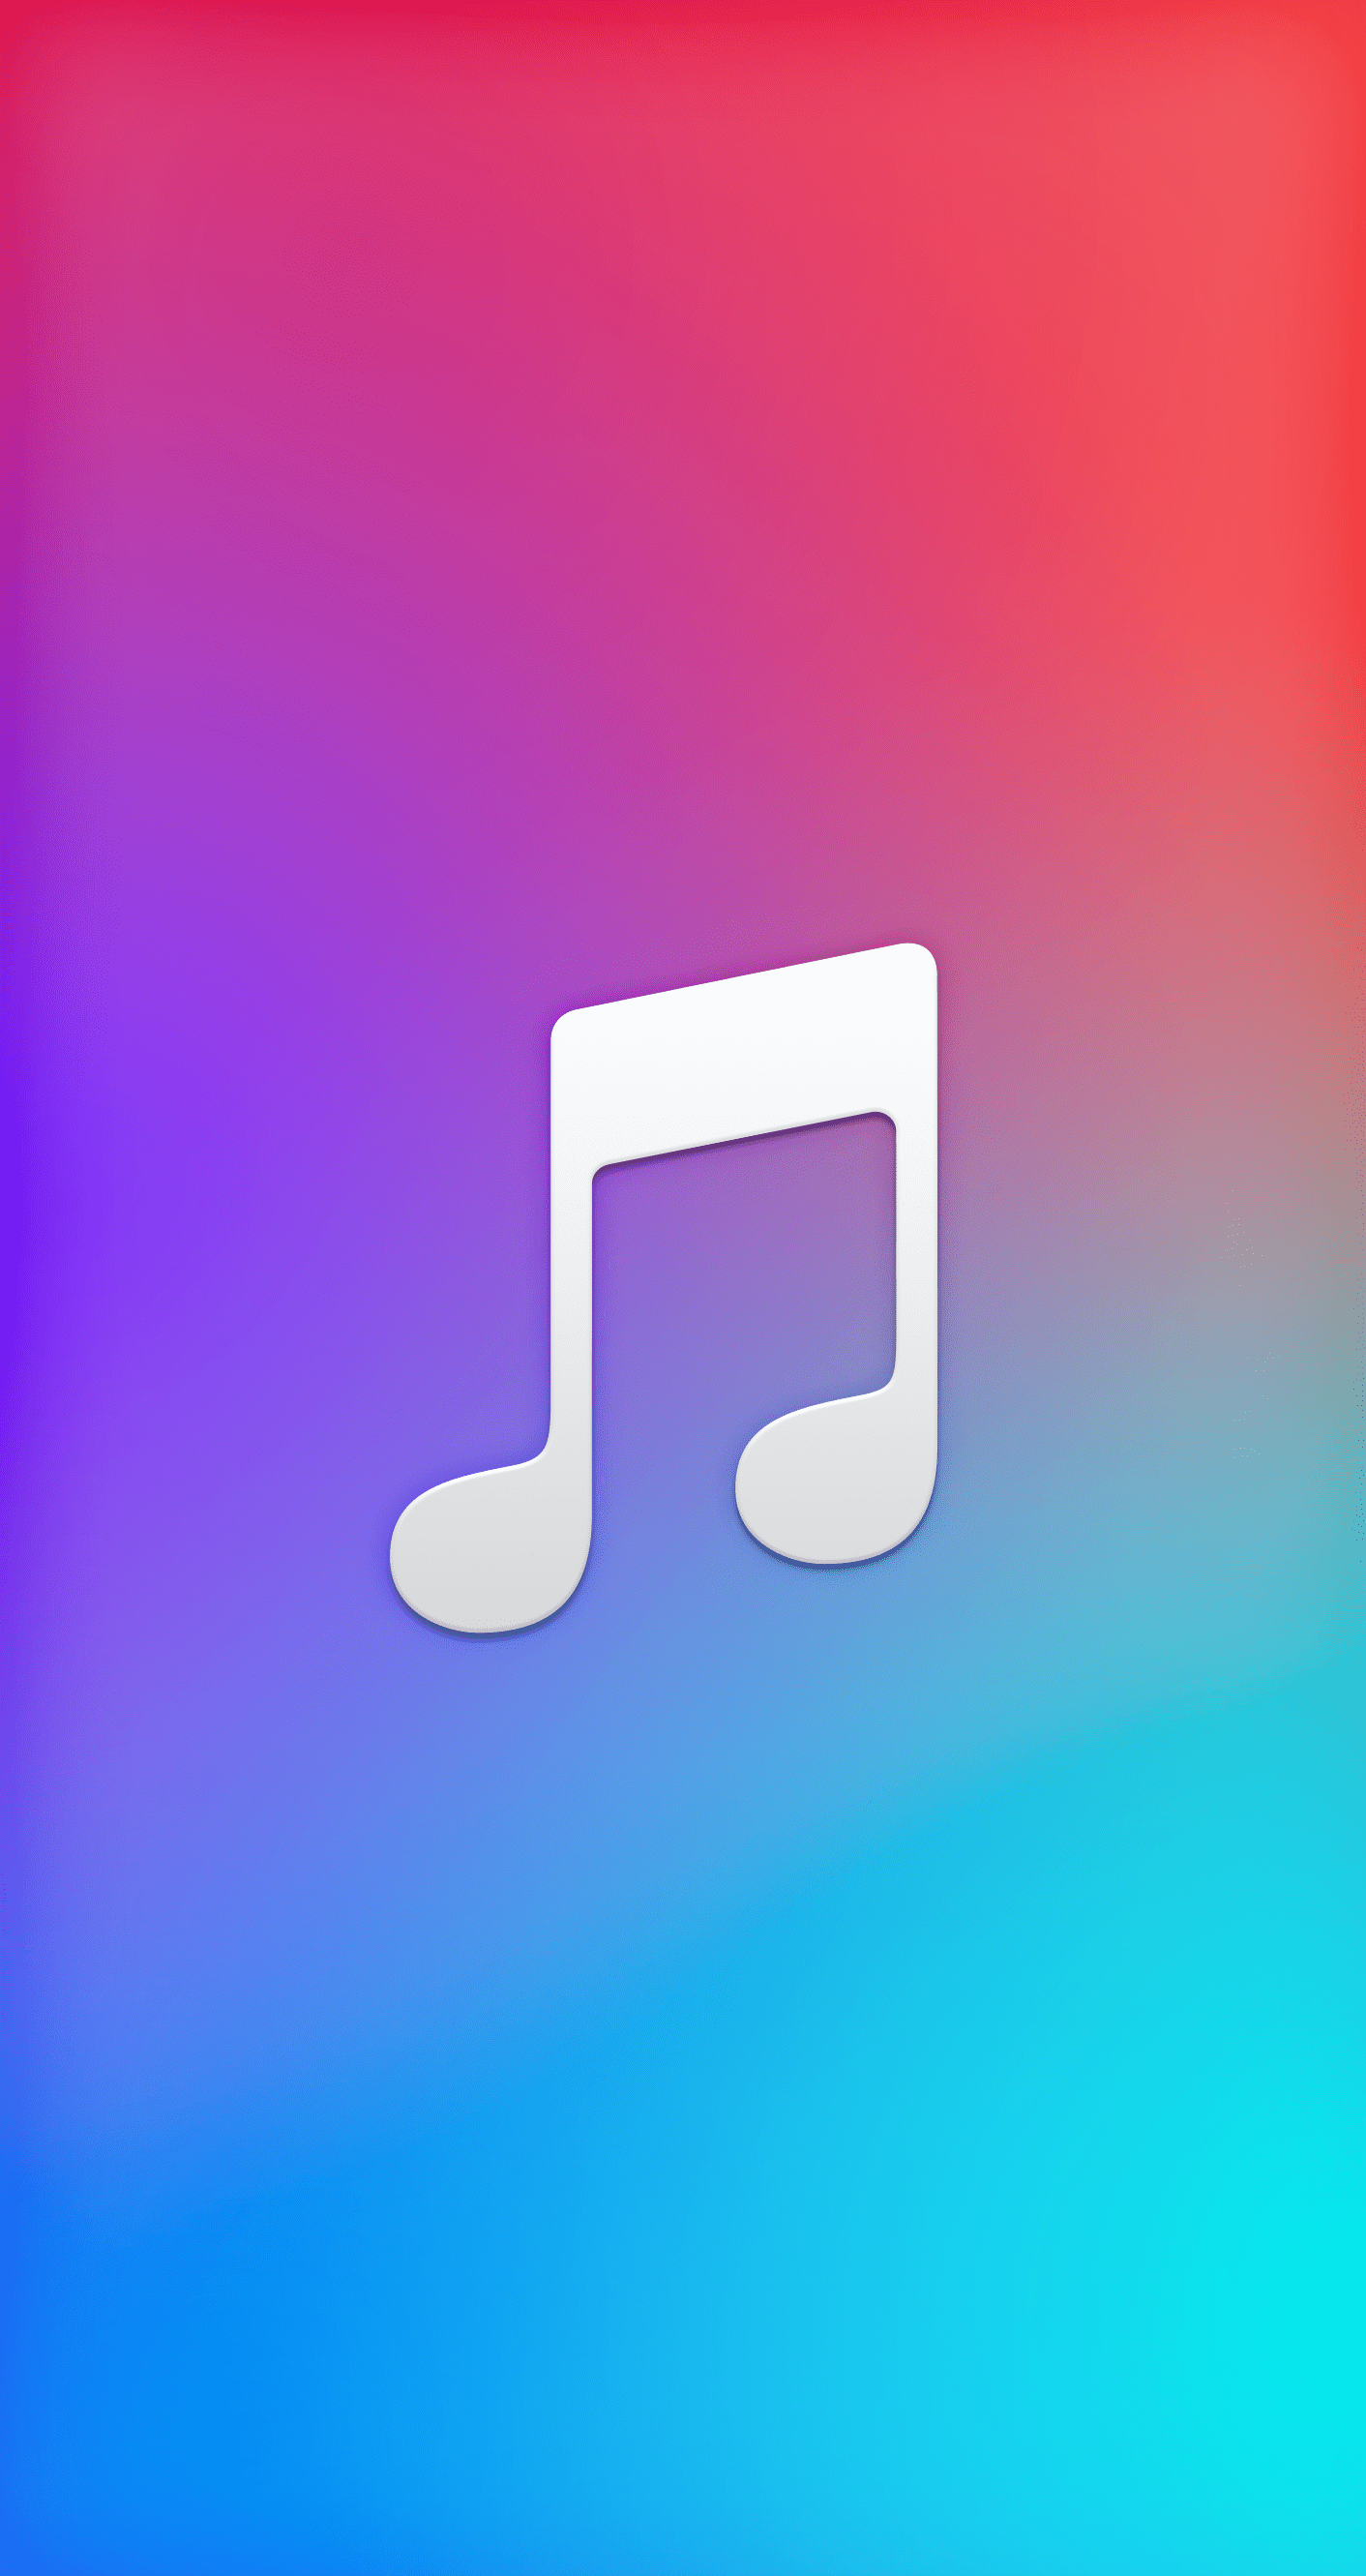 Iphone 6 Wallpaper Fall Apple Music Inspired Wallpapers For Ipad Iphone And